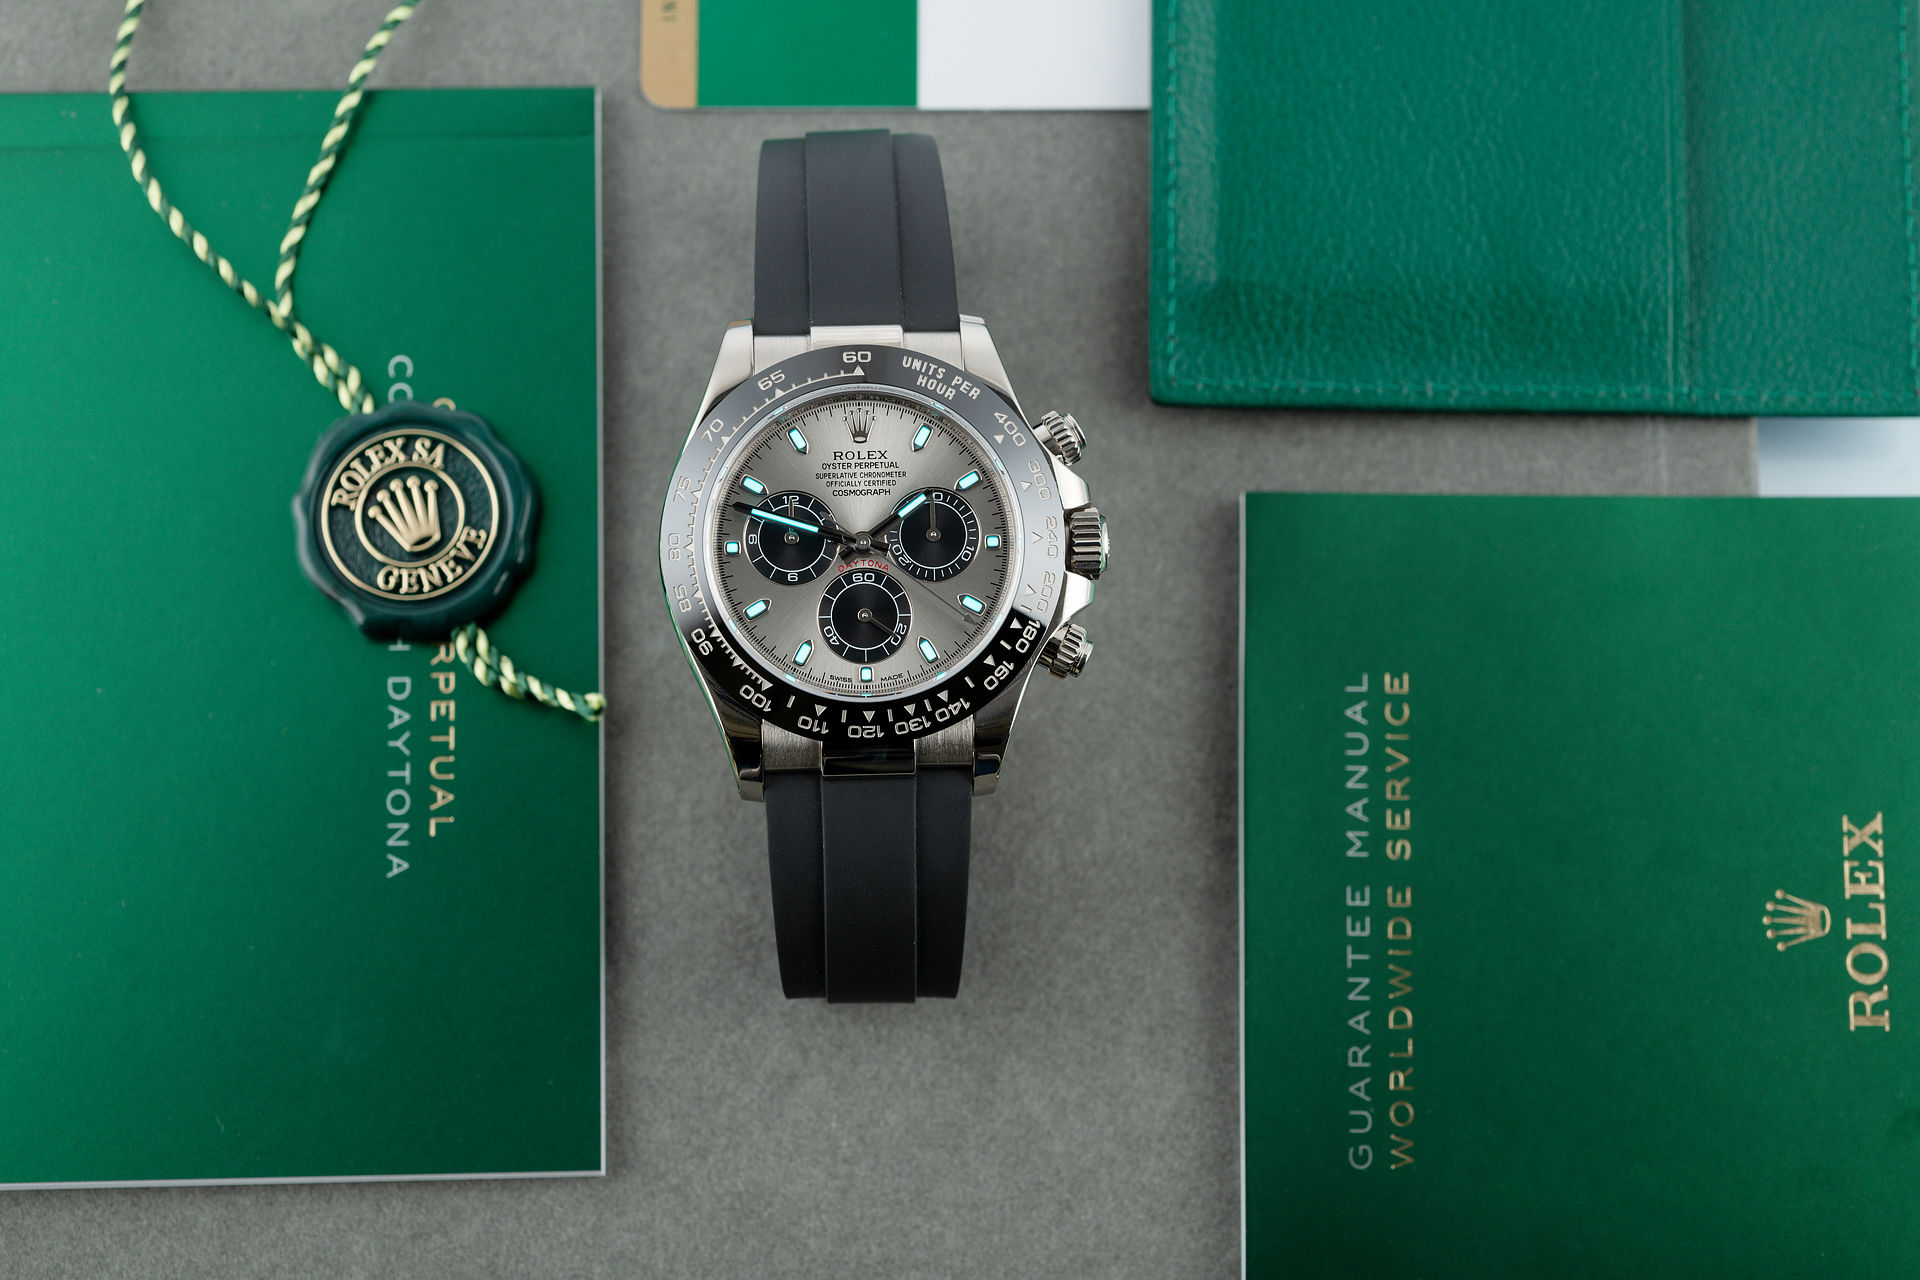 ref 116519LN | White Gold 'Latest Model' | Rolex Cosmograph Daytona